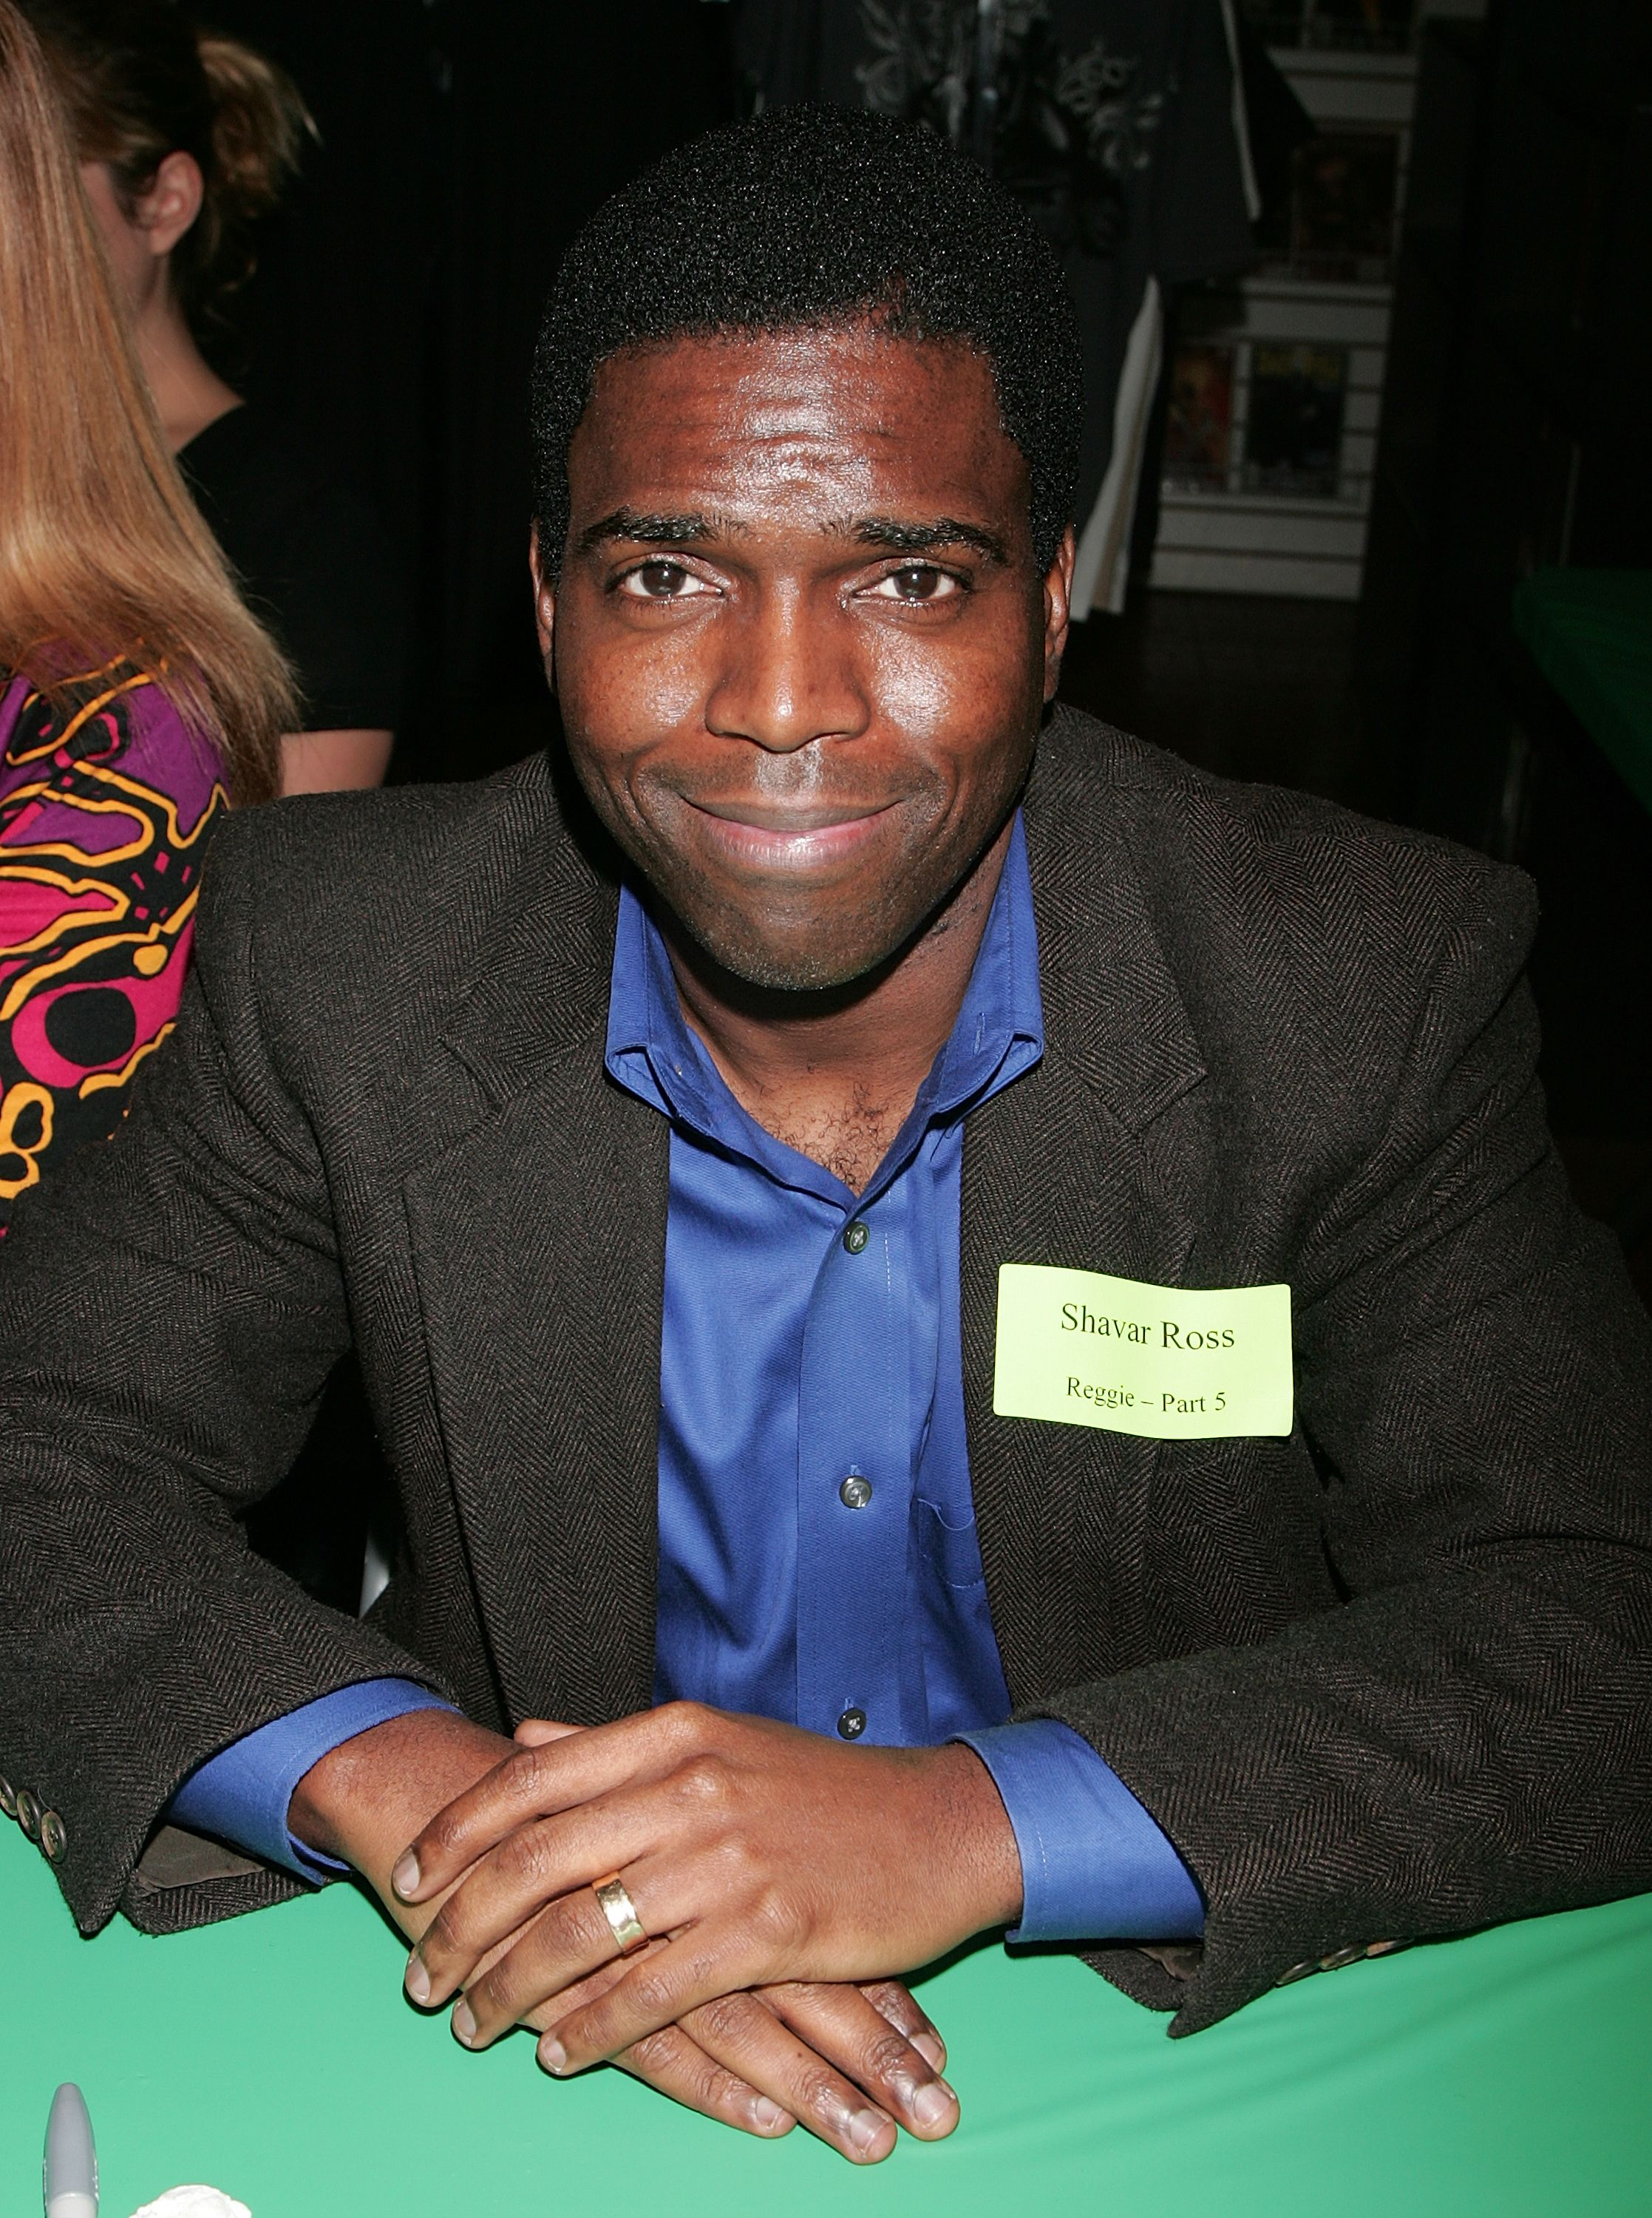 Shavar Ross at the Anchor Bay Entertainment's Jason Voorhees reunion at Emerald Knights comics and games store on February 3, 2009 in Burbank, California. | Source: Getty Images